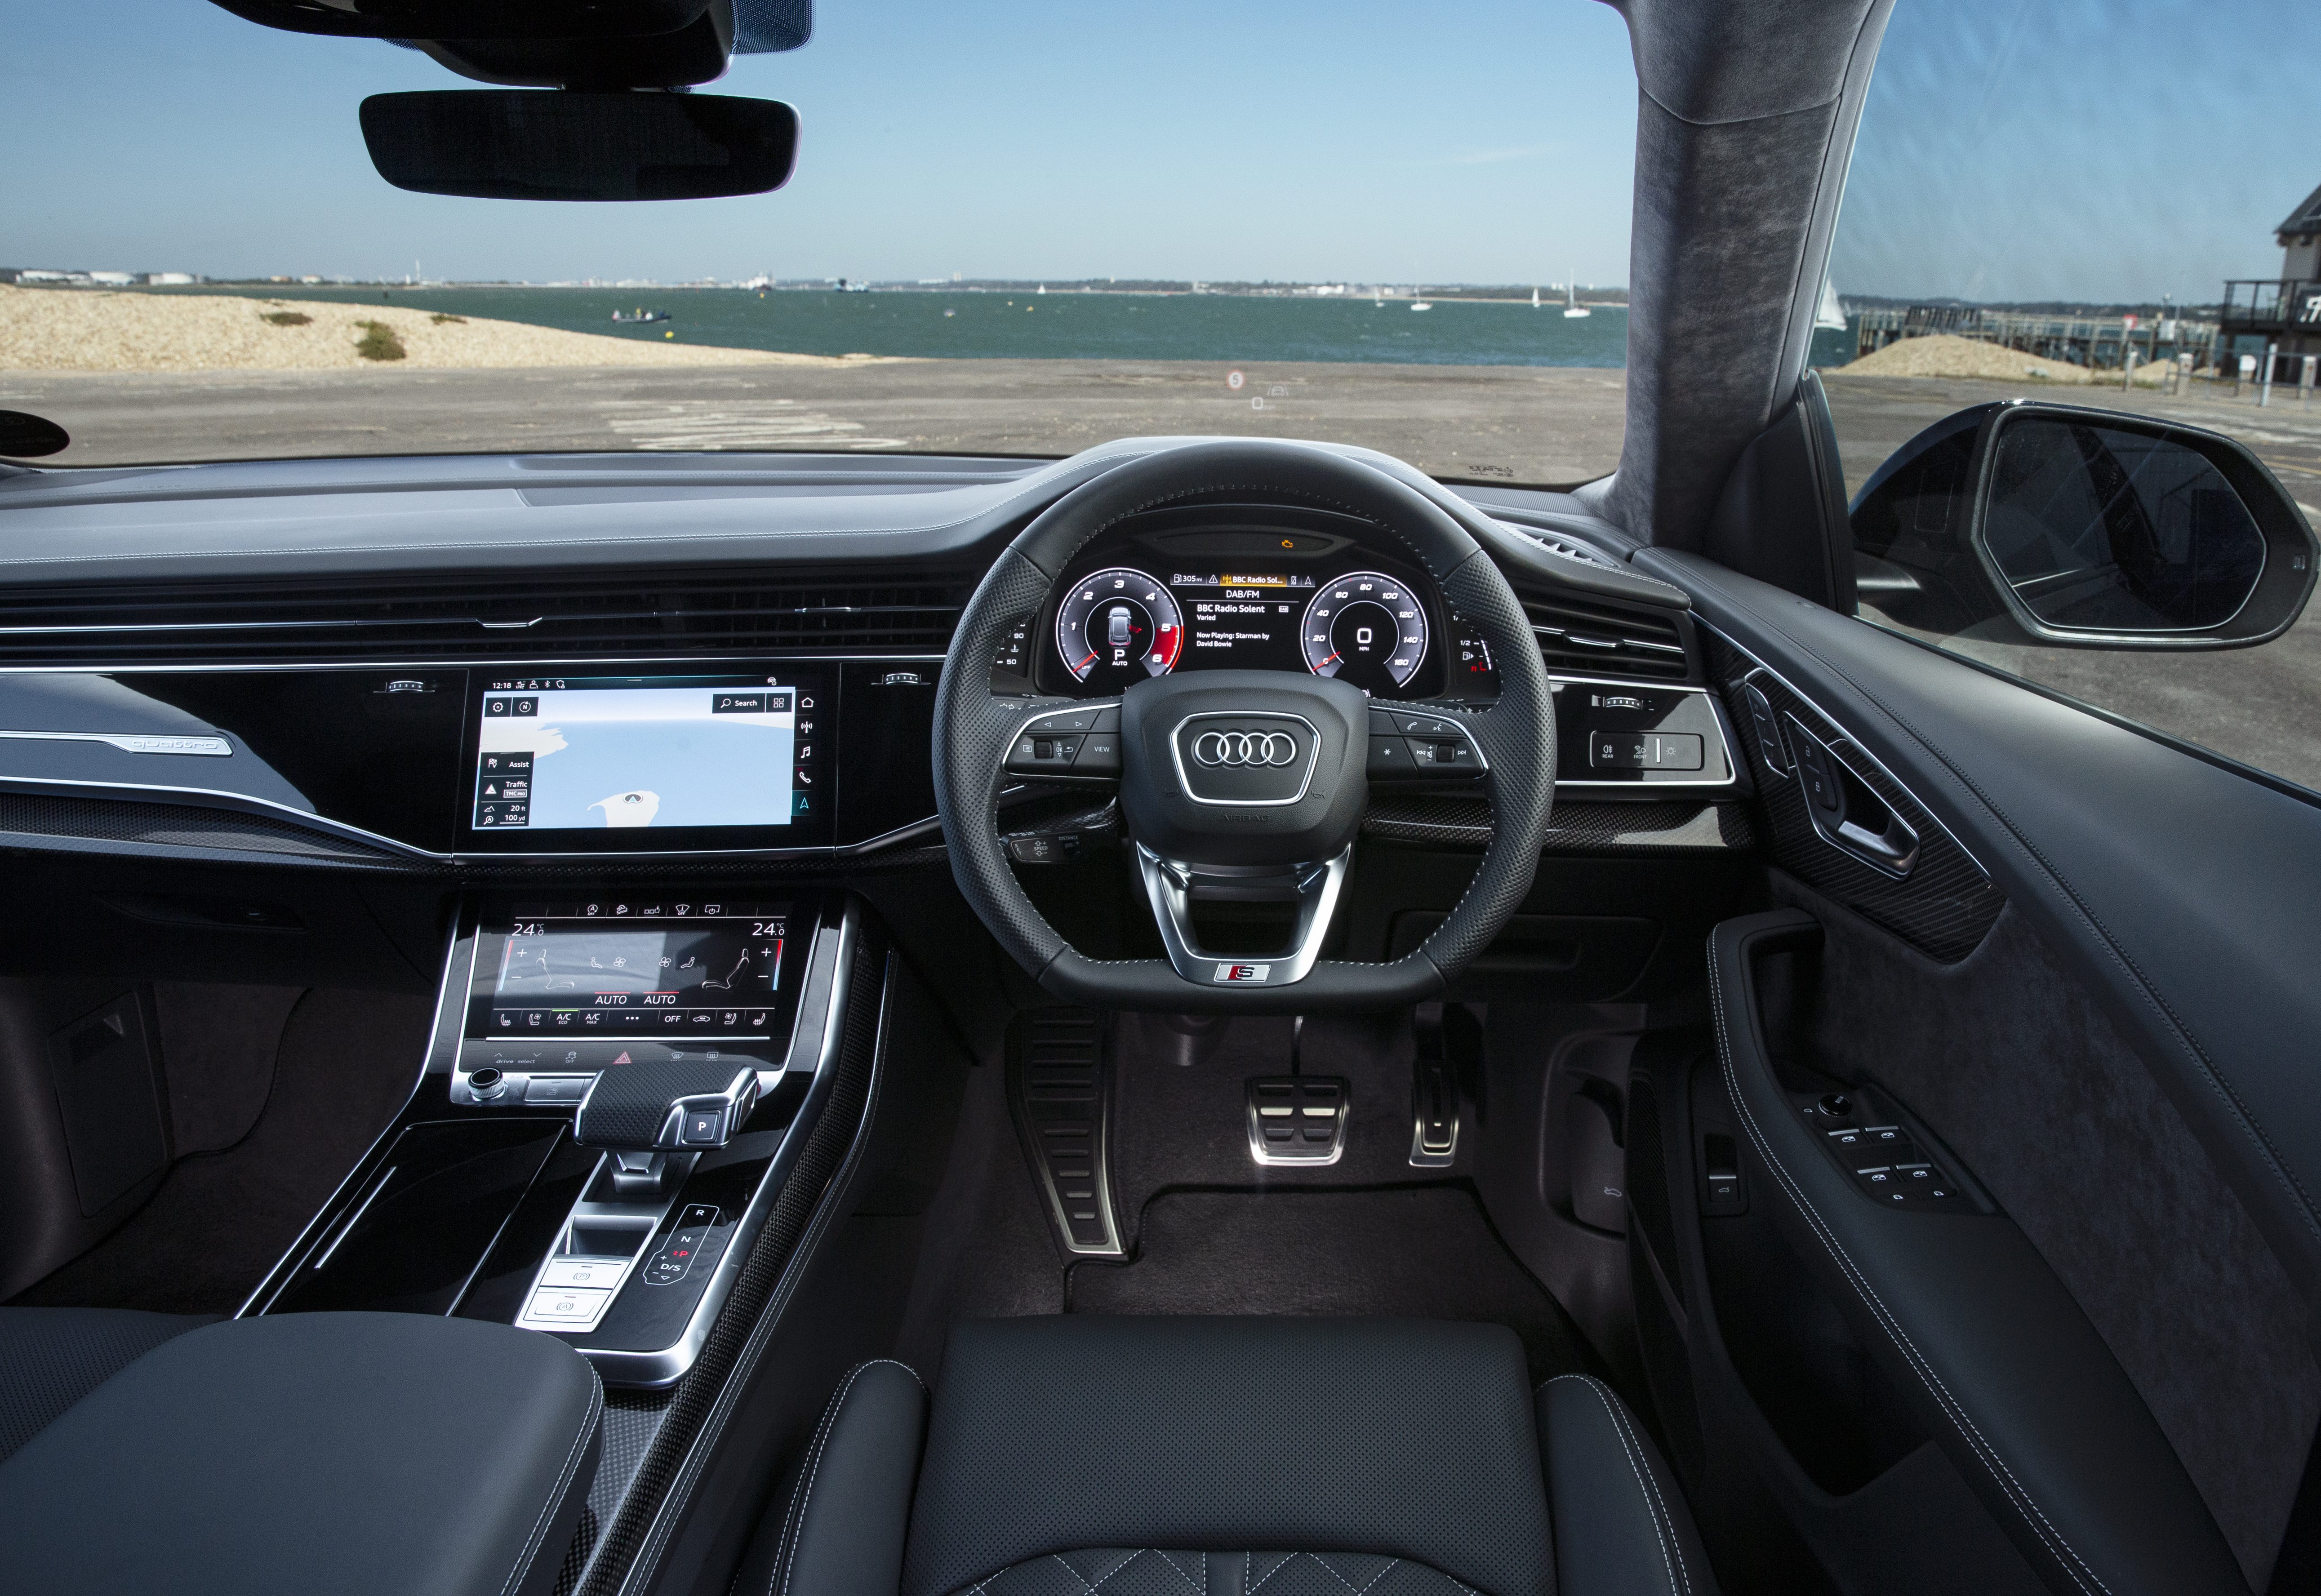 The interior is dominated by a twin screen infotainment system